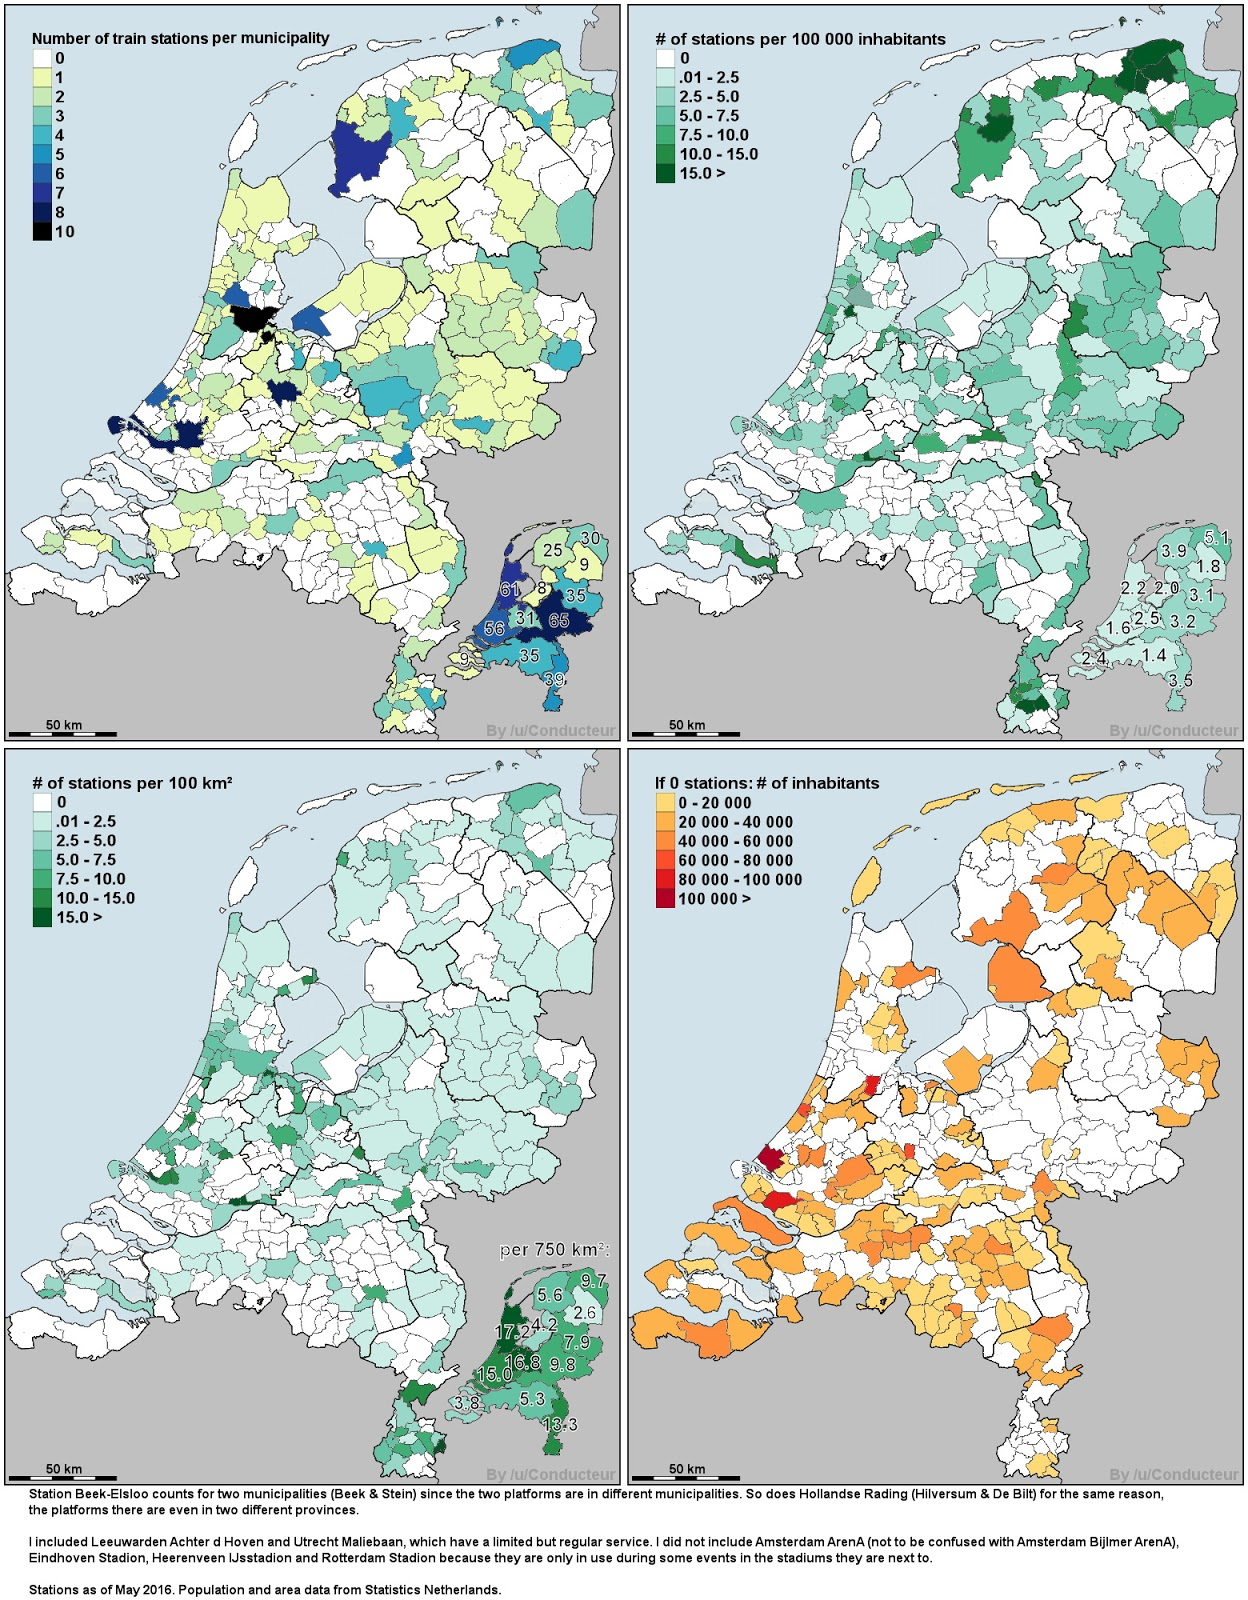 Train station density in the Netherlands